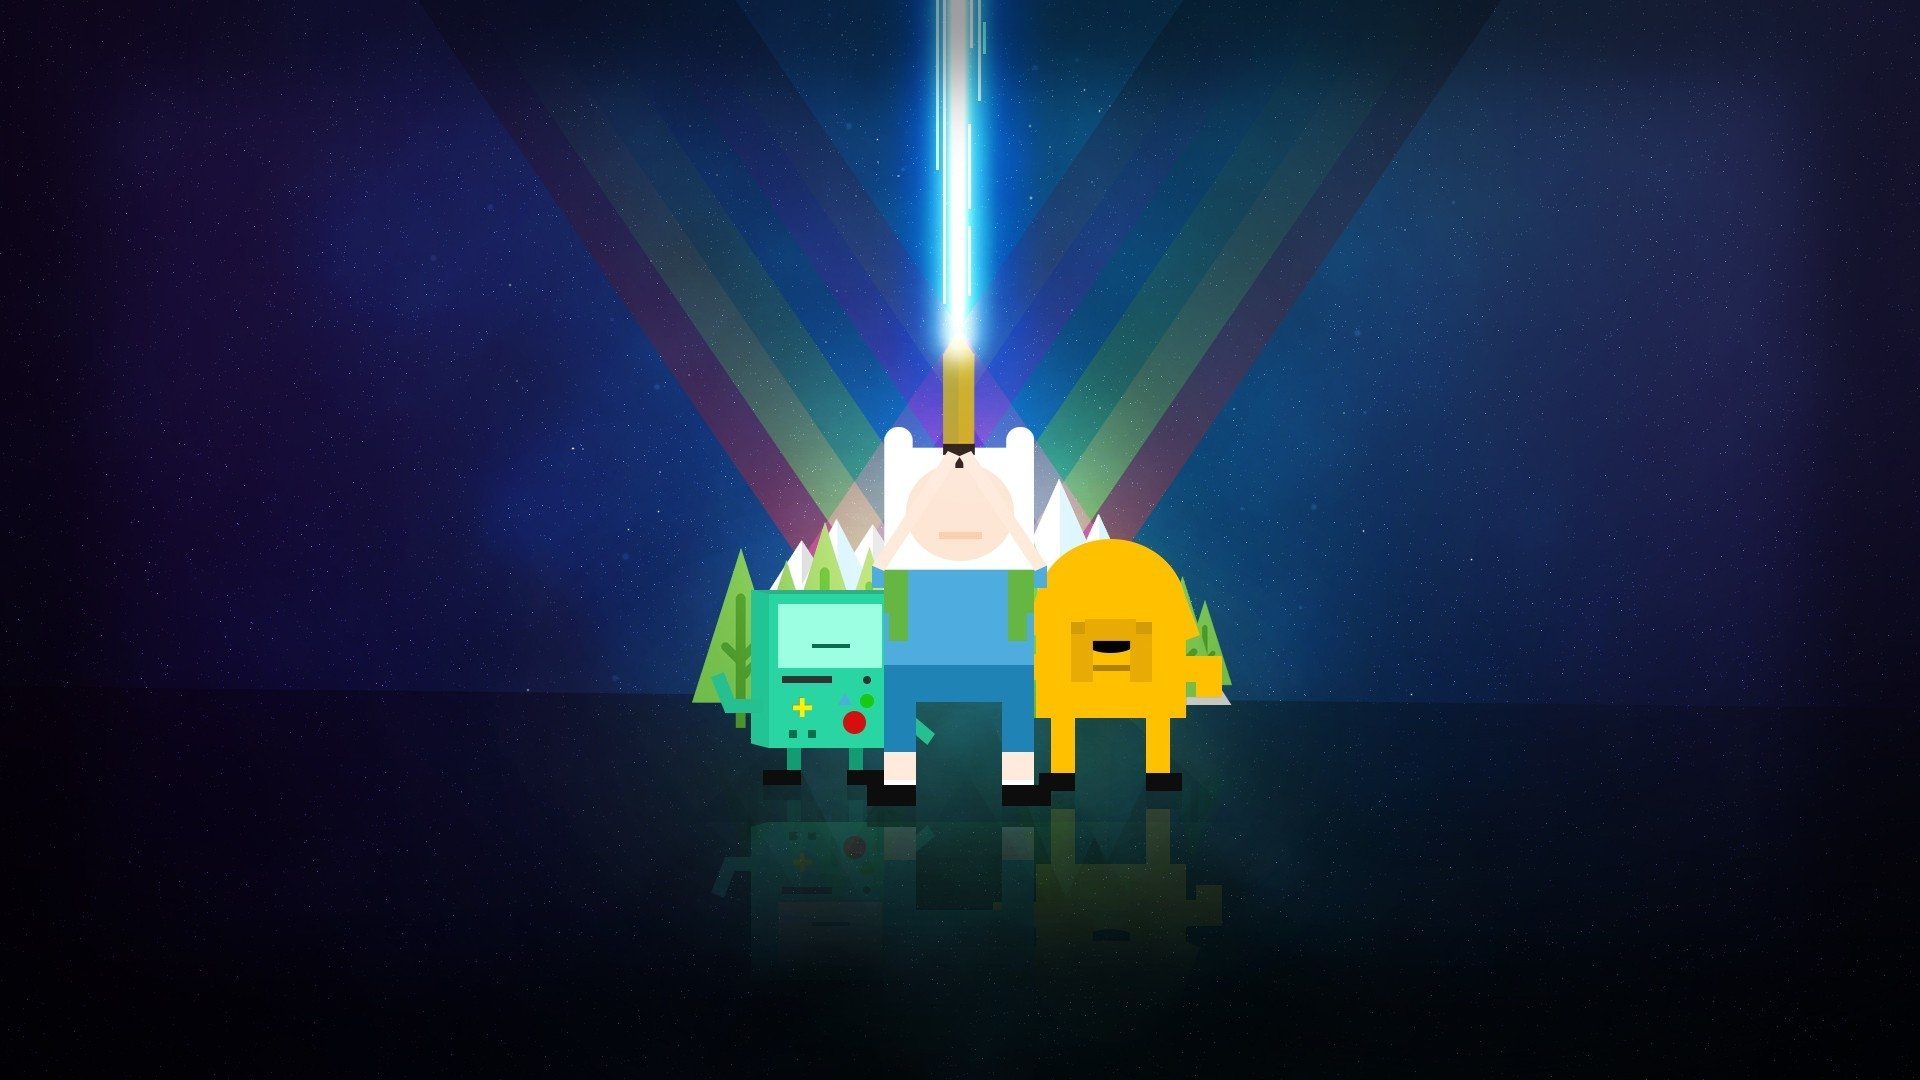 Adventure Time Iphone X Wallpaper Adventure Time Full Hd Fond D 233 Cran And Arri 232 Re Plan